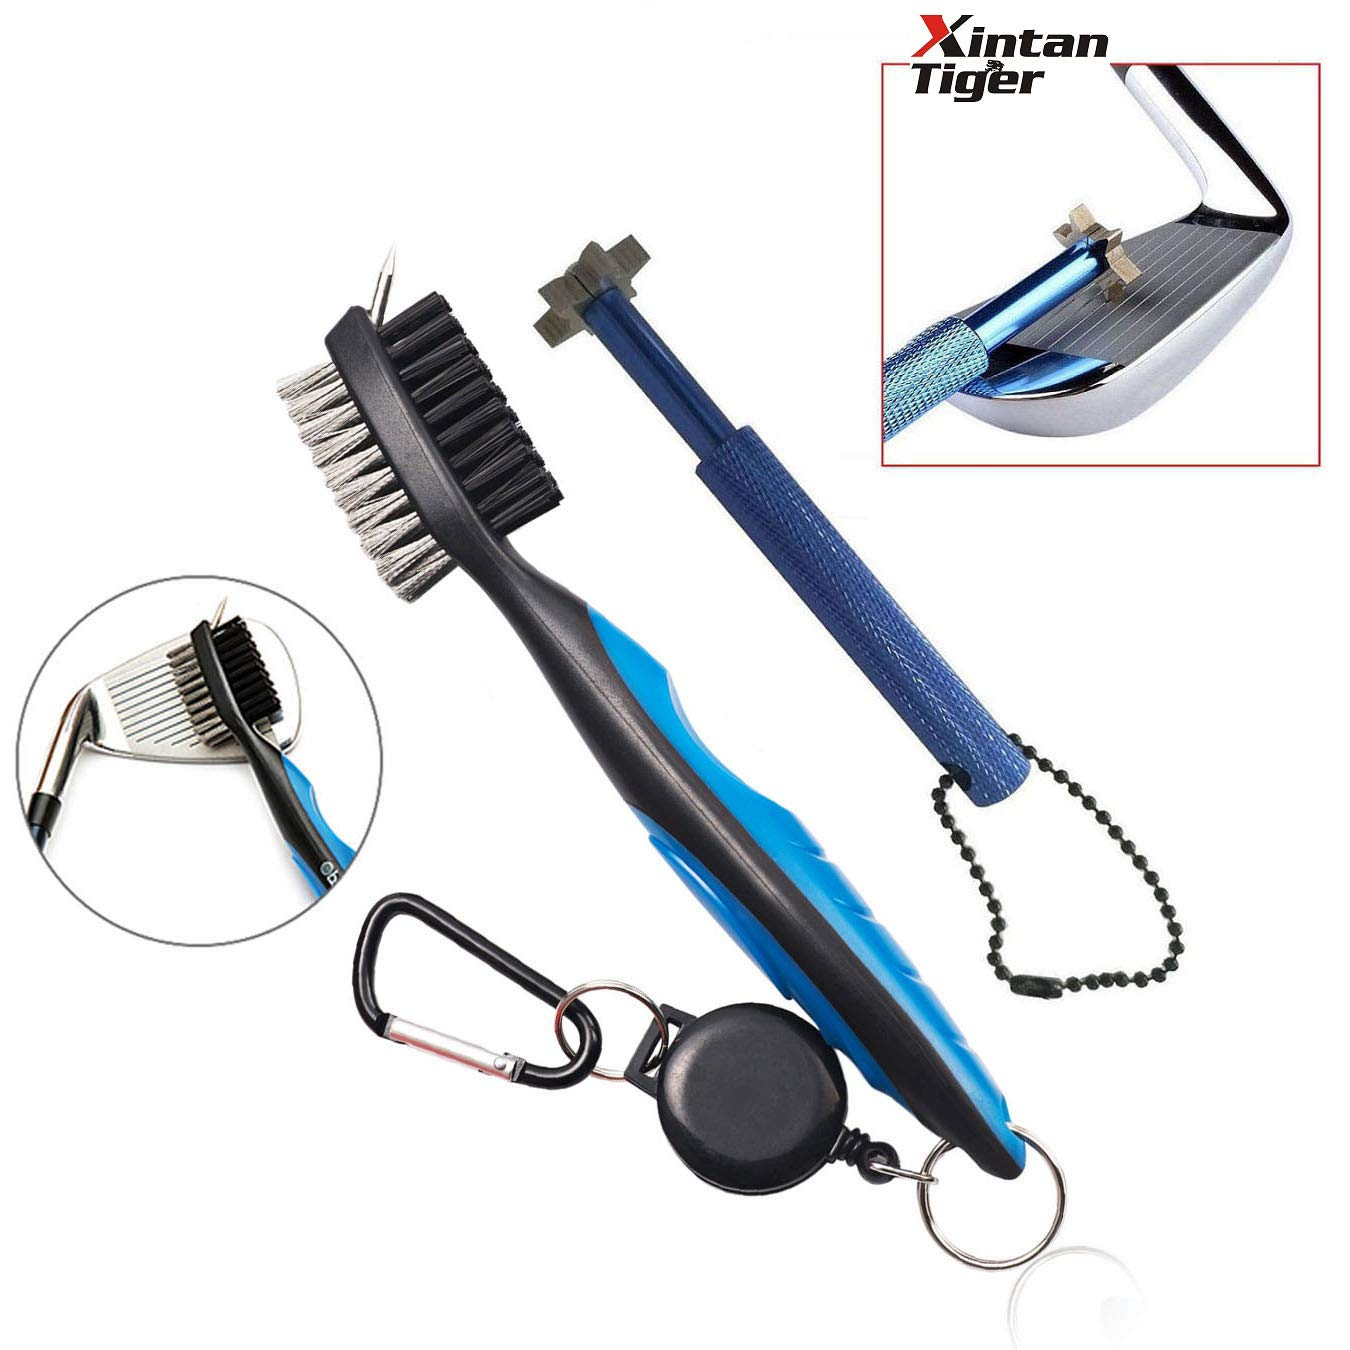 XinTan Tiger Golf Tool Set -Retractable Golf Club Brush and 6 Heads Golf Club Groove Sharpener.Perfect Gift for Golfers-Practical Sharp and Clean Kits for All Golf Irons (Brush Groove Sharpener) by XinTan Tiger